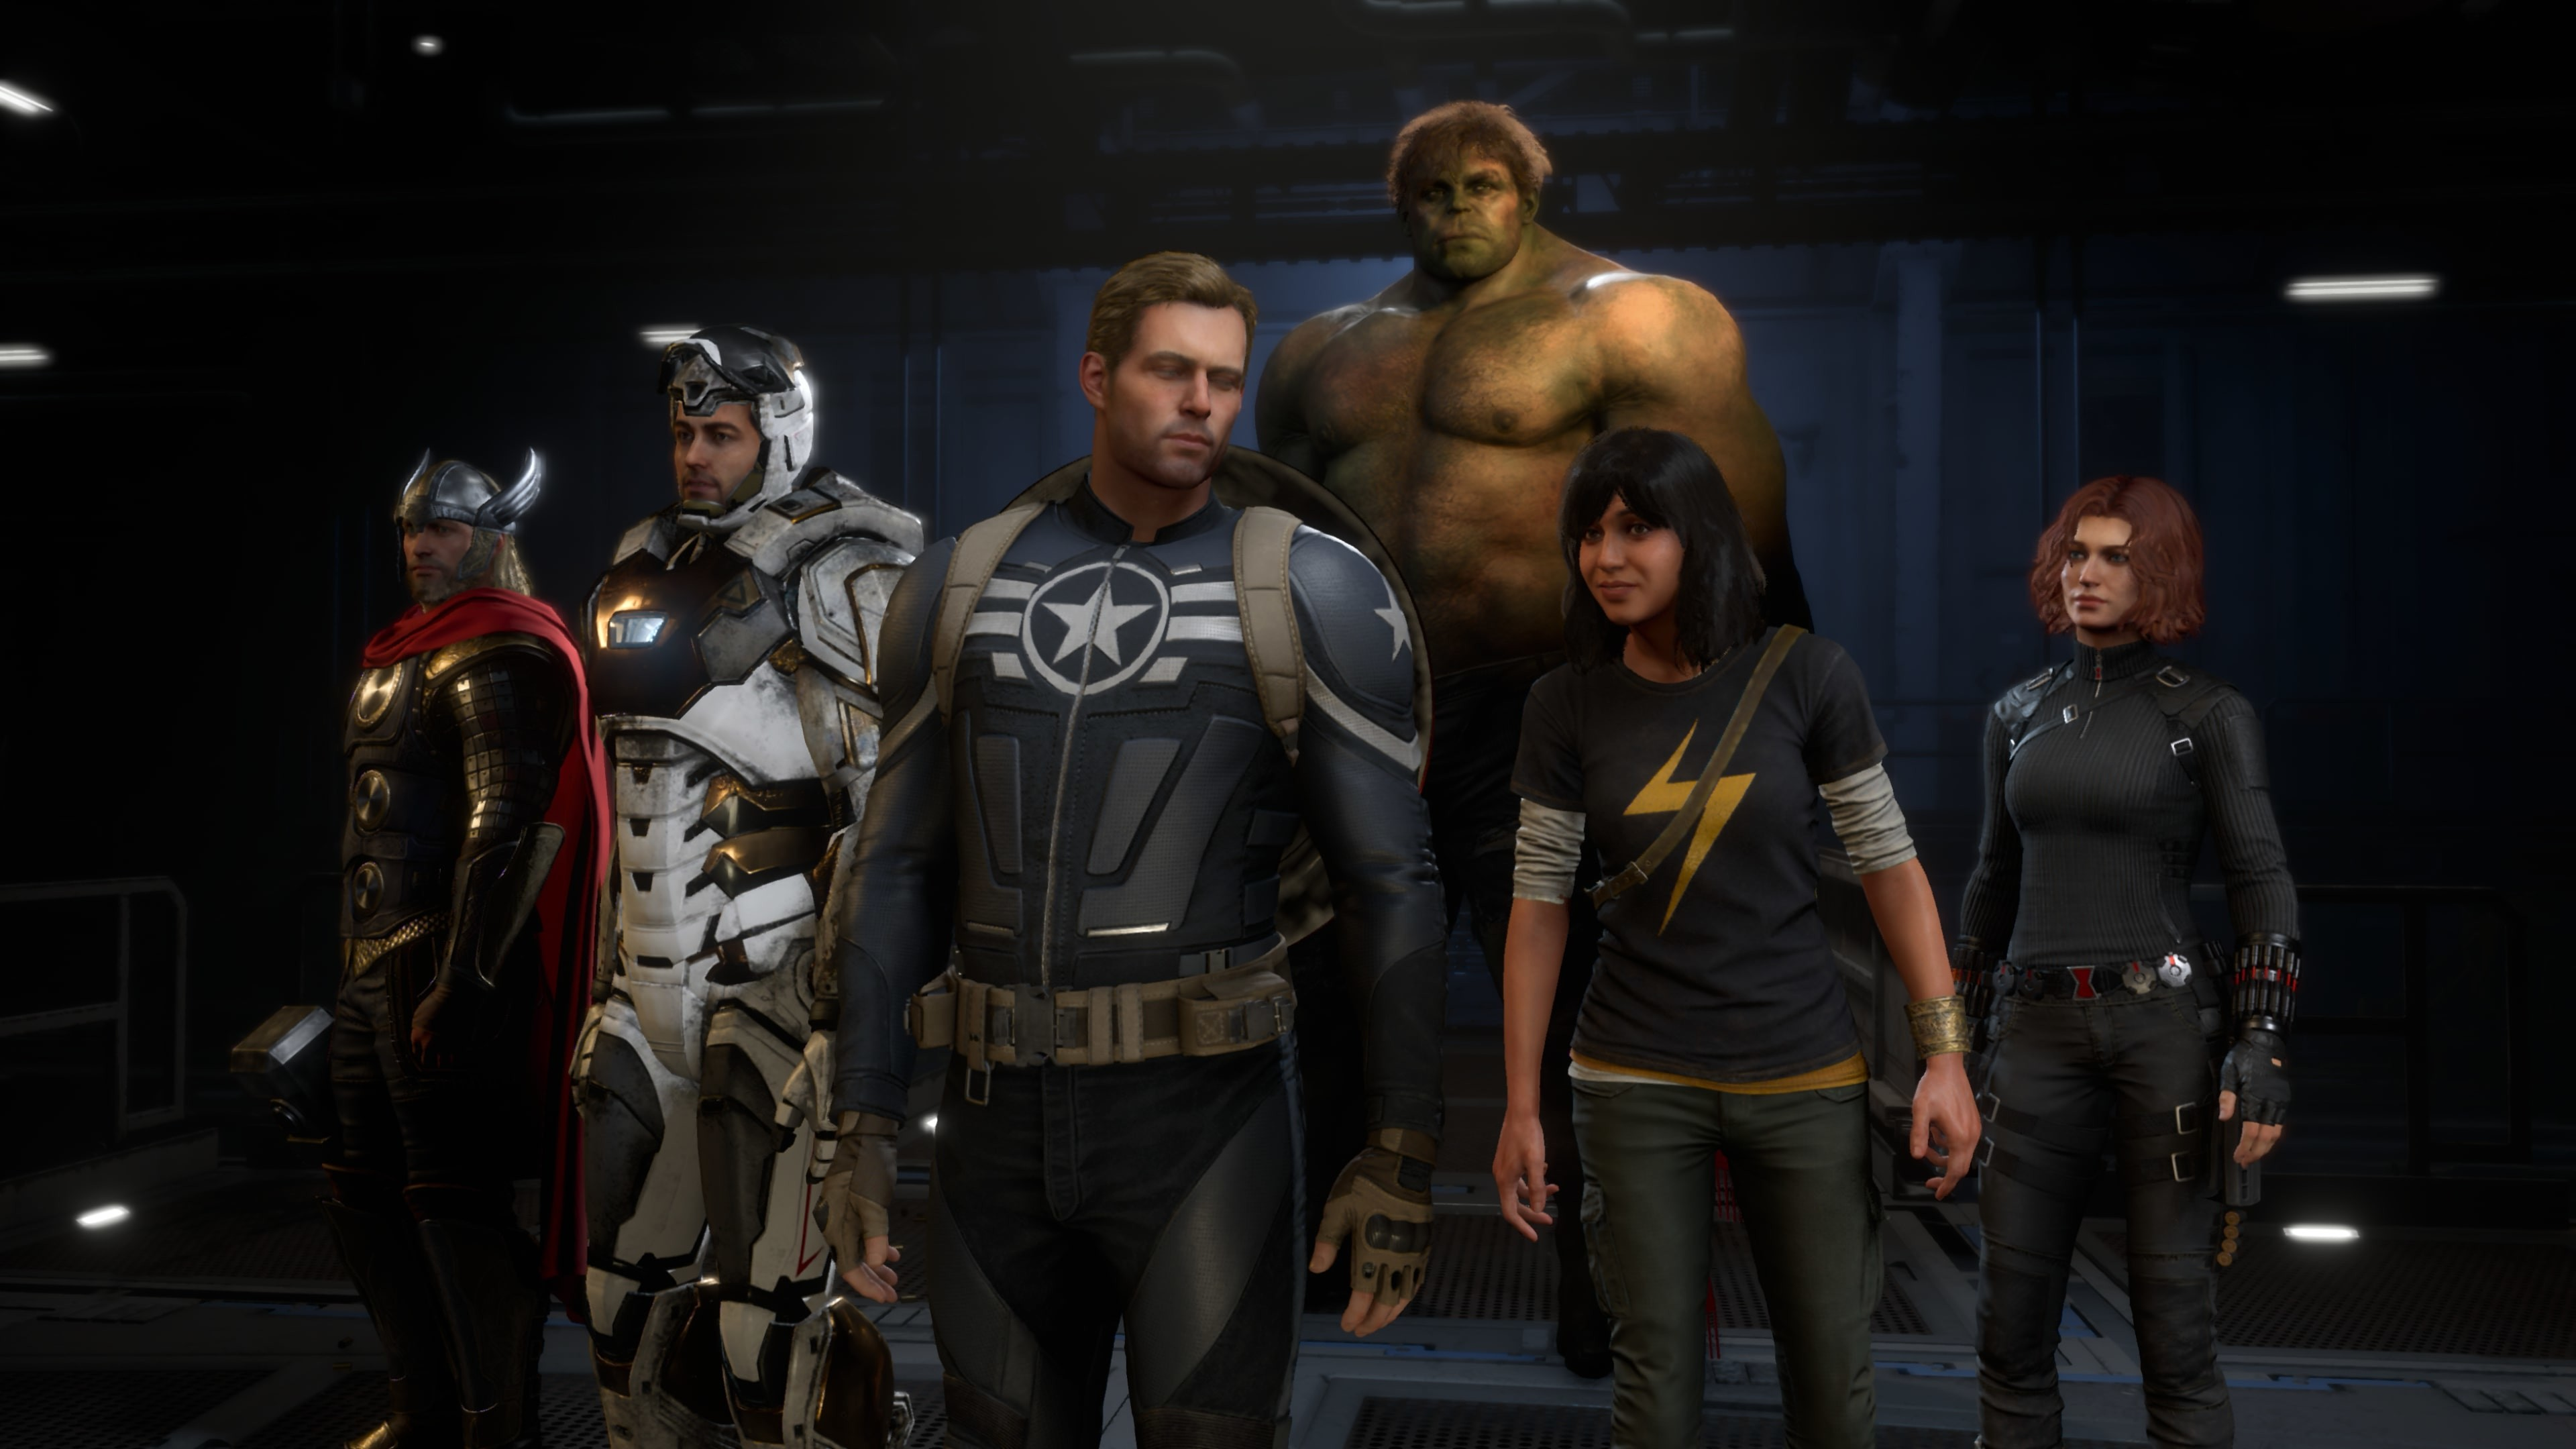 Review of Avengers.  When Destiny meets Uncharted